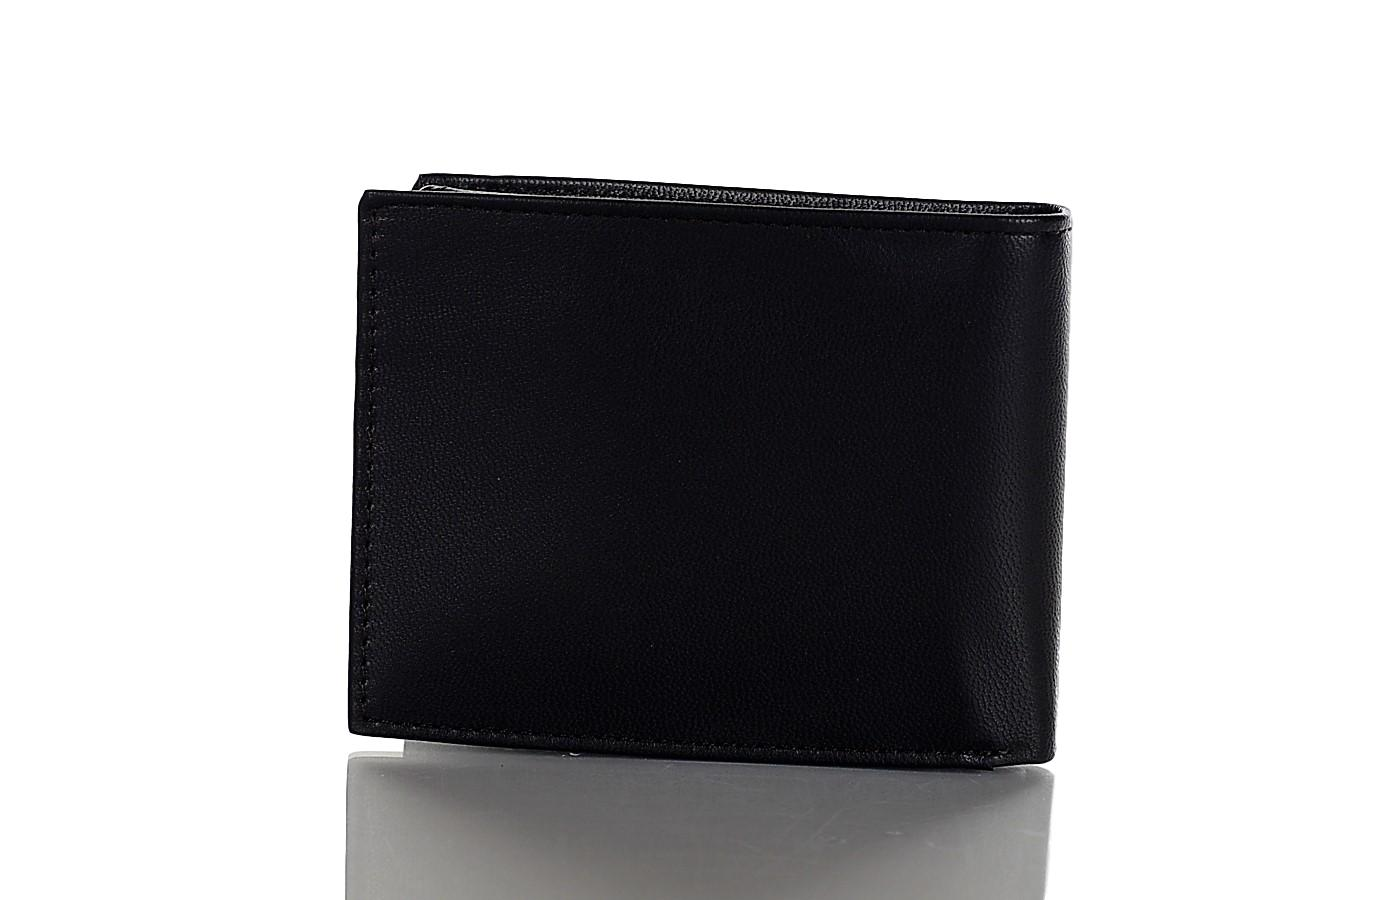 Steve-Madden-Mens-Smooth-Grain-Leather-RFID-Blocking-Passcase-Wallet thumbnail 11